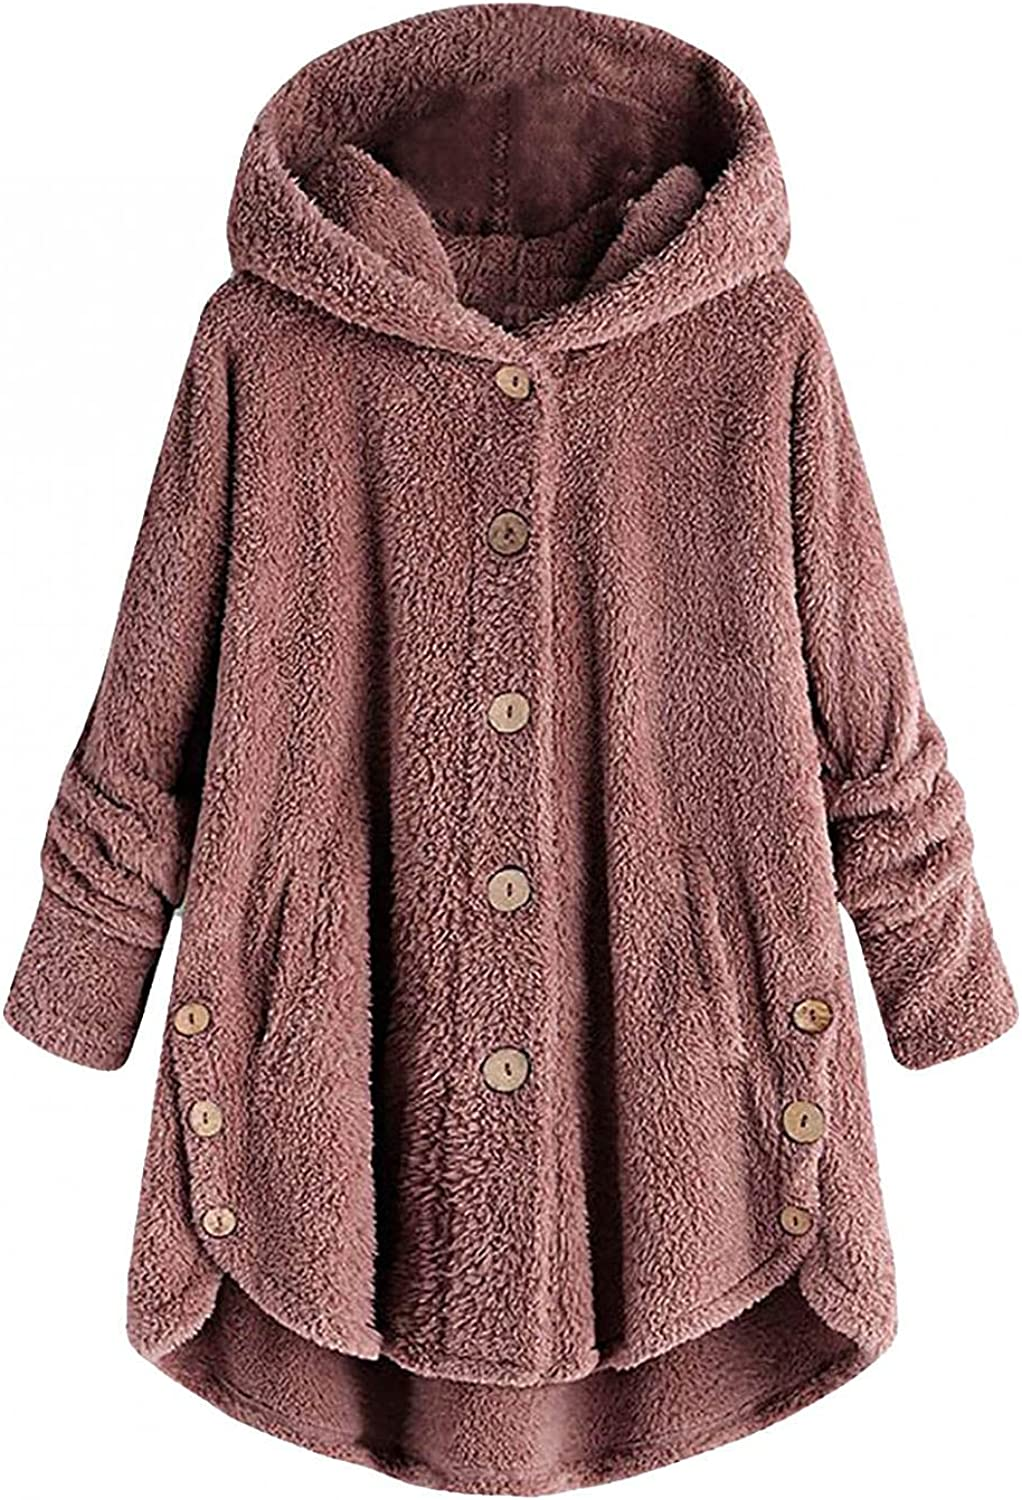 Thick Fleece Jacket Women Button Coats Patchworl Tops Hooded Pullover Loose Sweater Overcoat Plus Size Trench Outwear